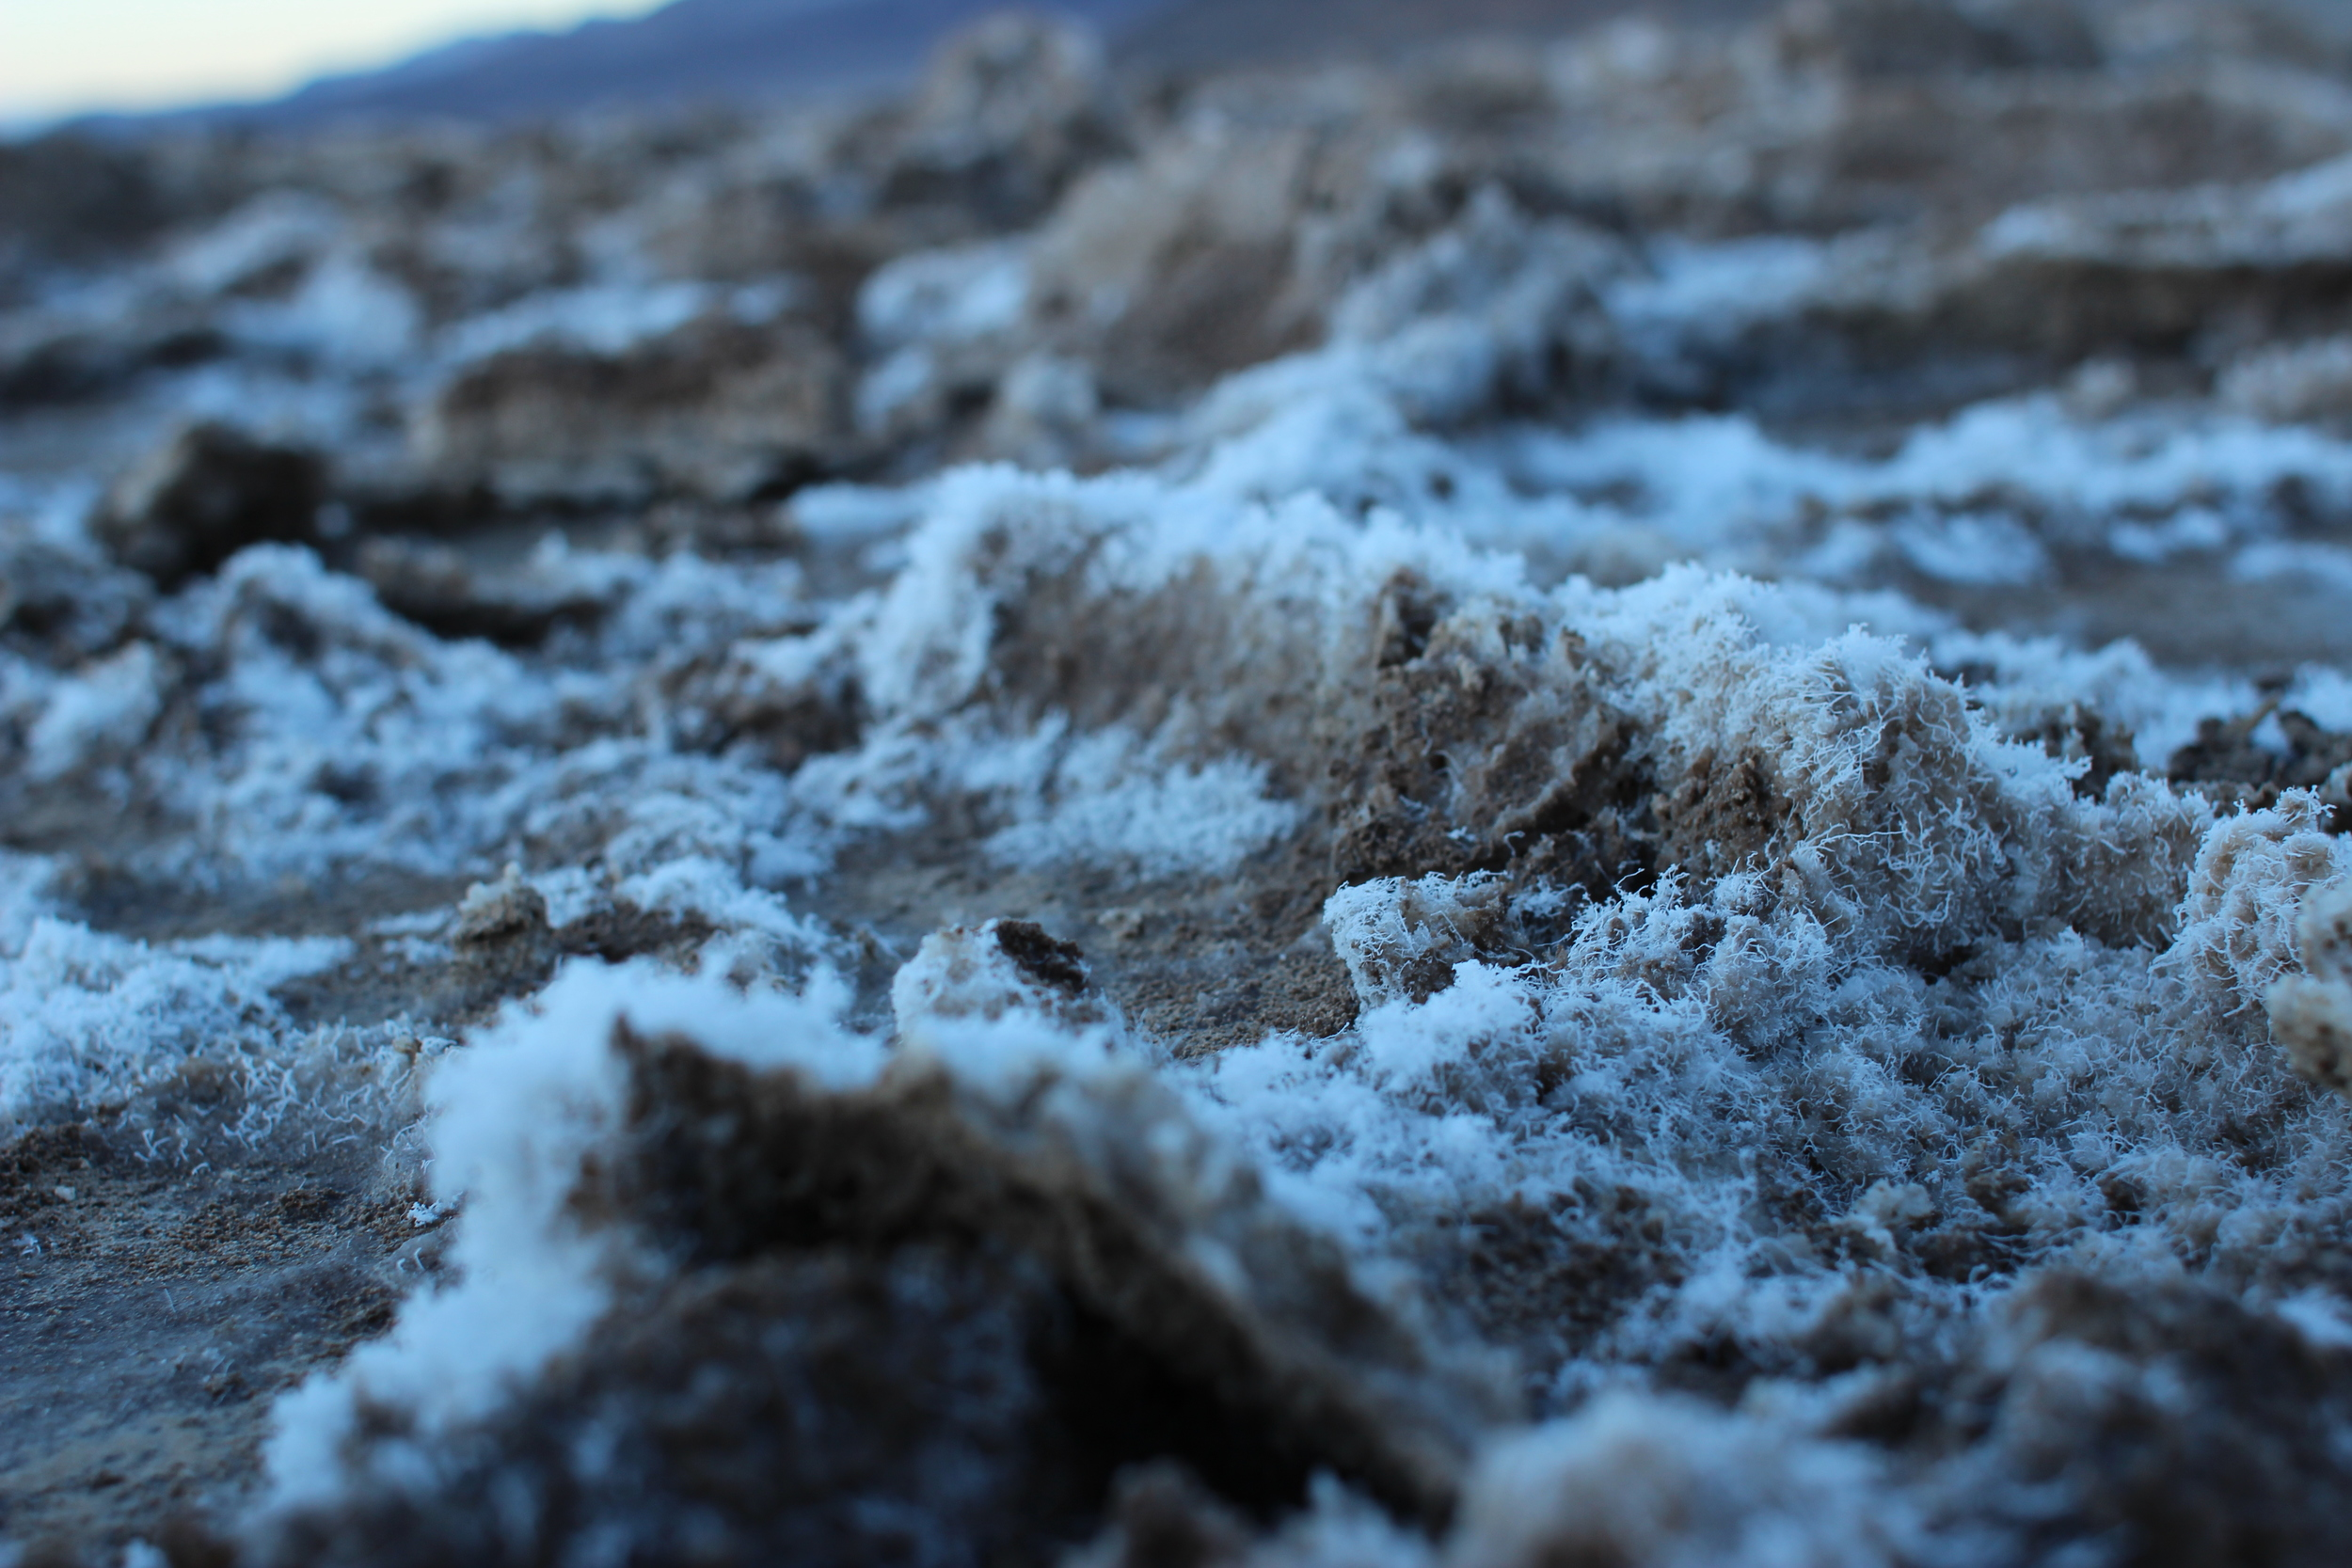 A close-up of the salt at Badwater Basin.